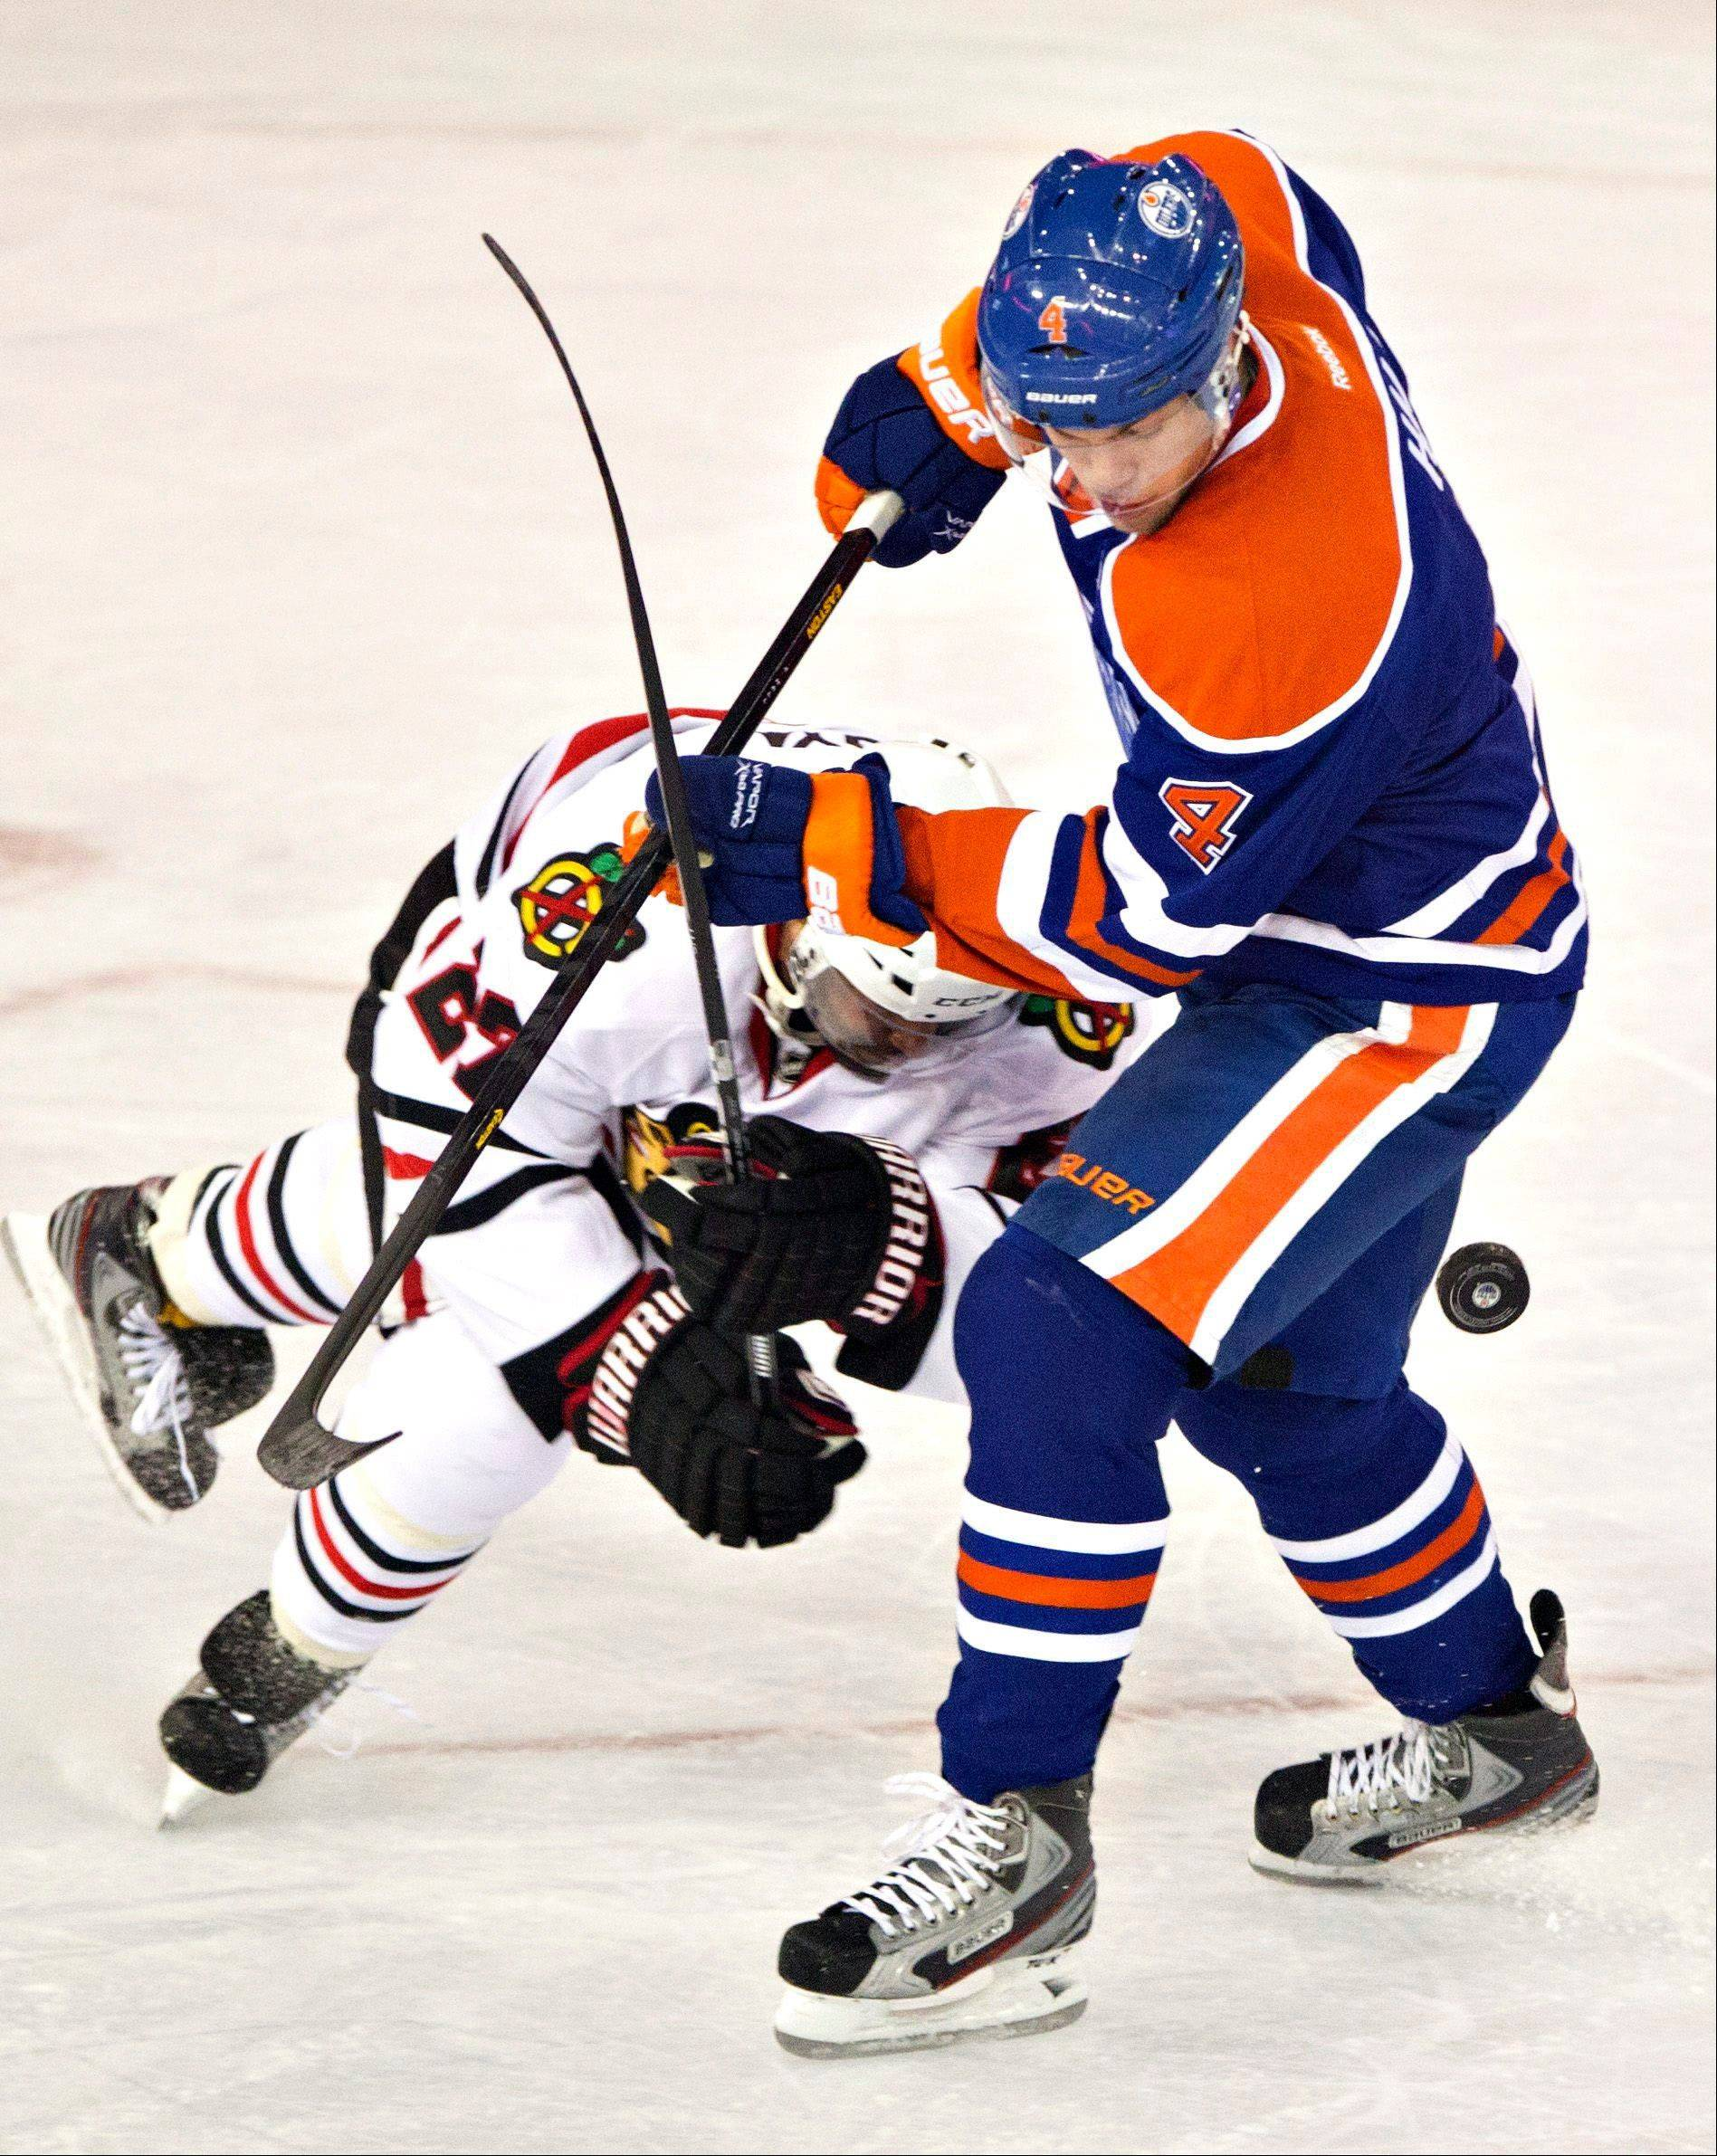 Chicago Blackhawks' Johnny Oduya is checked by Edmonton Oilers' Taylor Hall (4) during the first period of their NHL hockey game in Edmonton, Alberta, Wednesday, April 24, 2013.